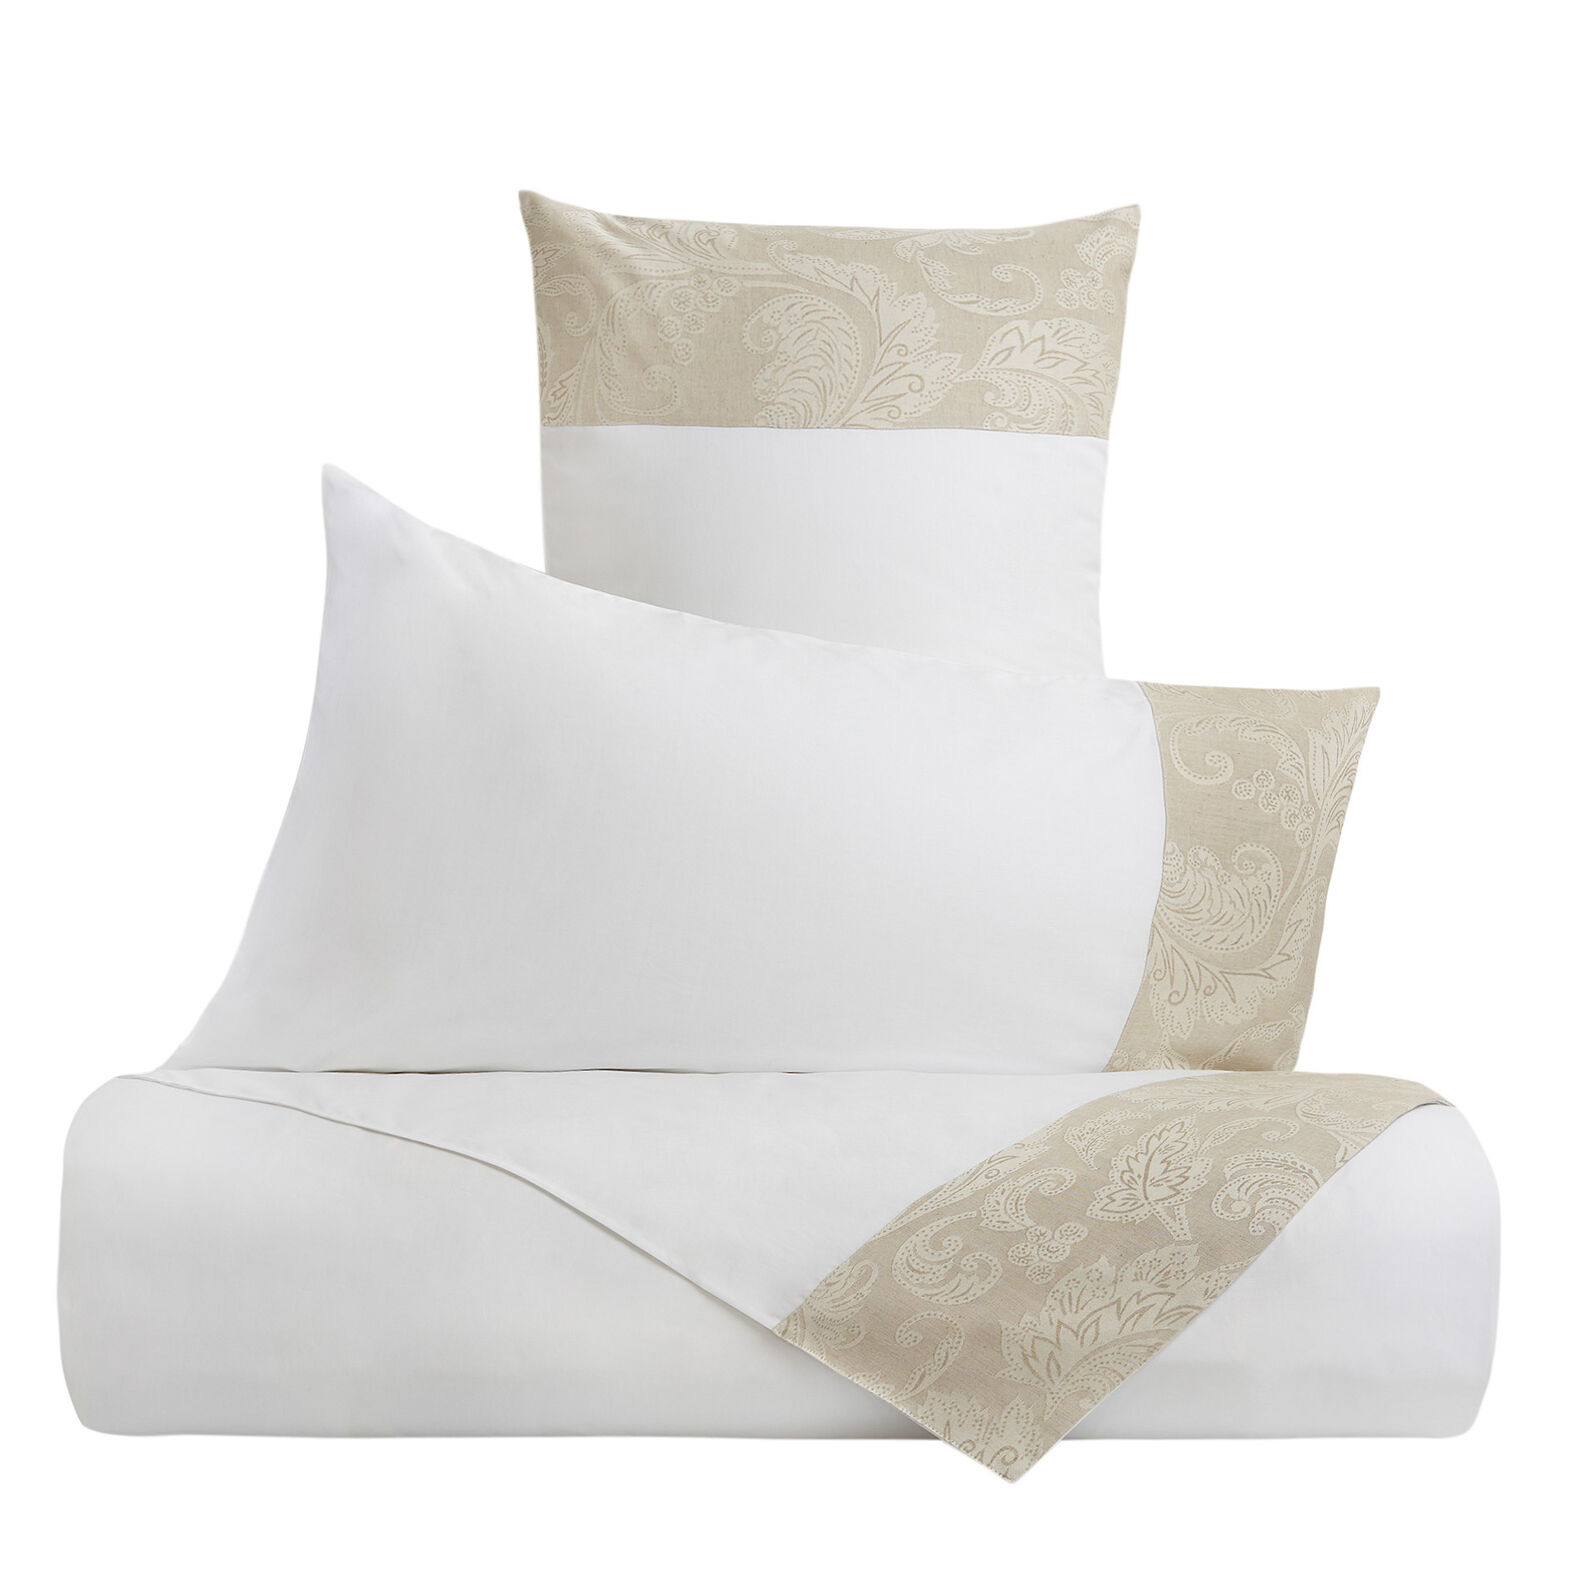 Portofino pillowcase in 100% cotton with linen trim